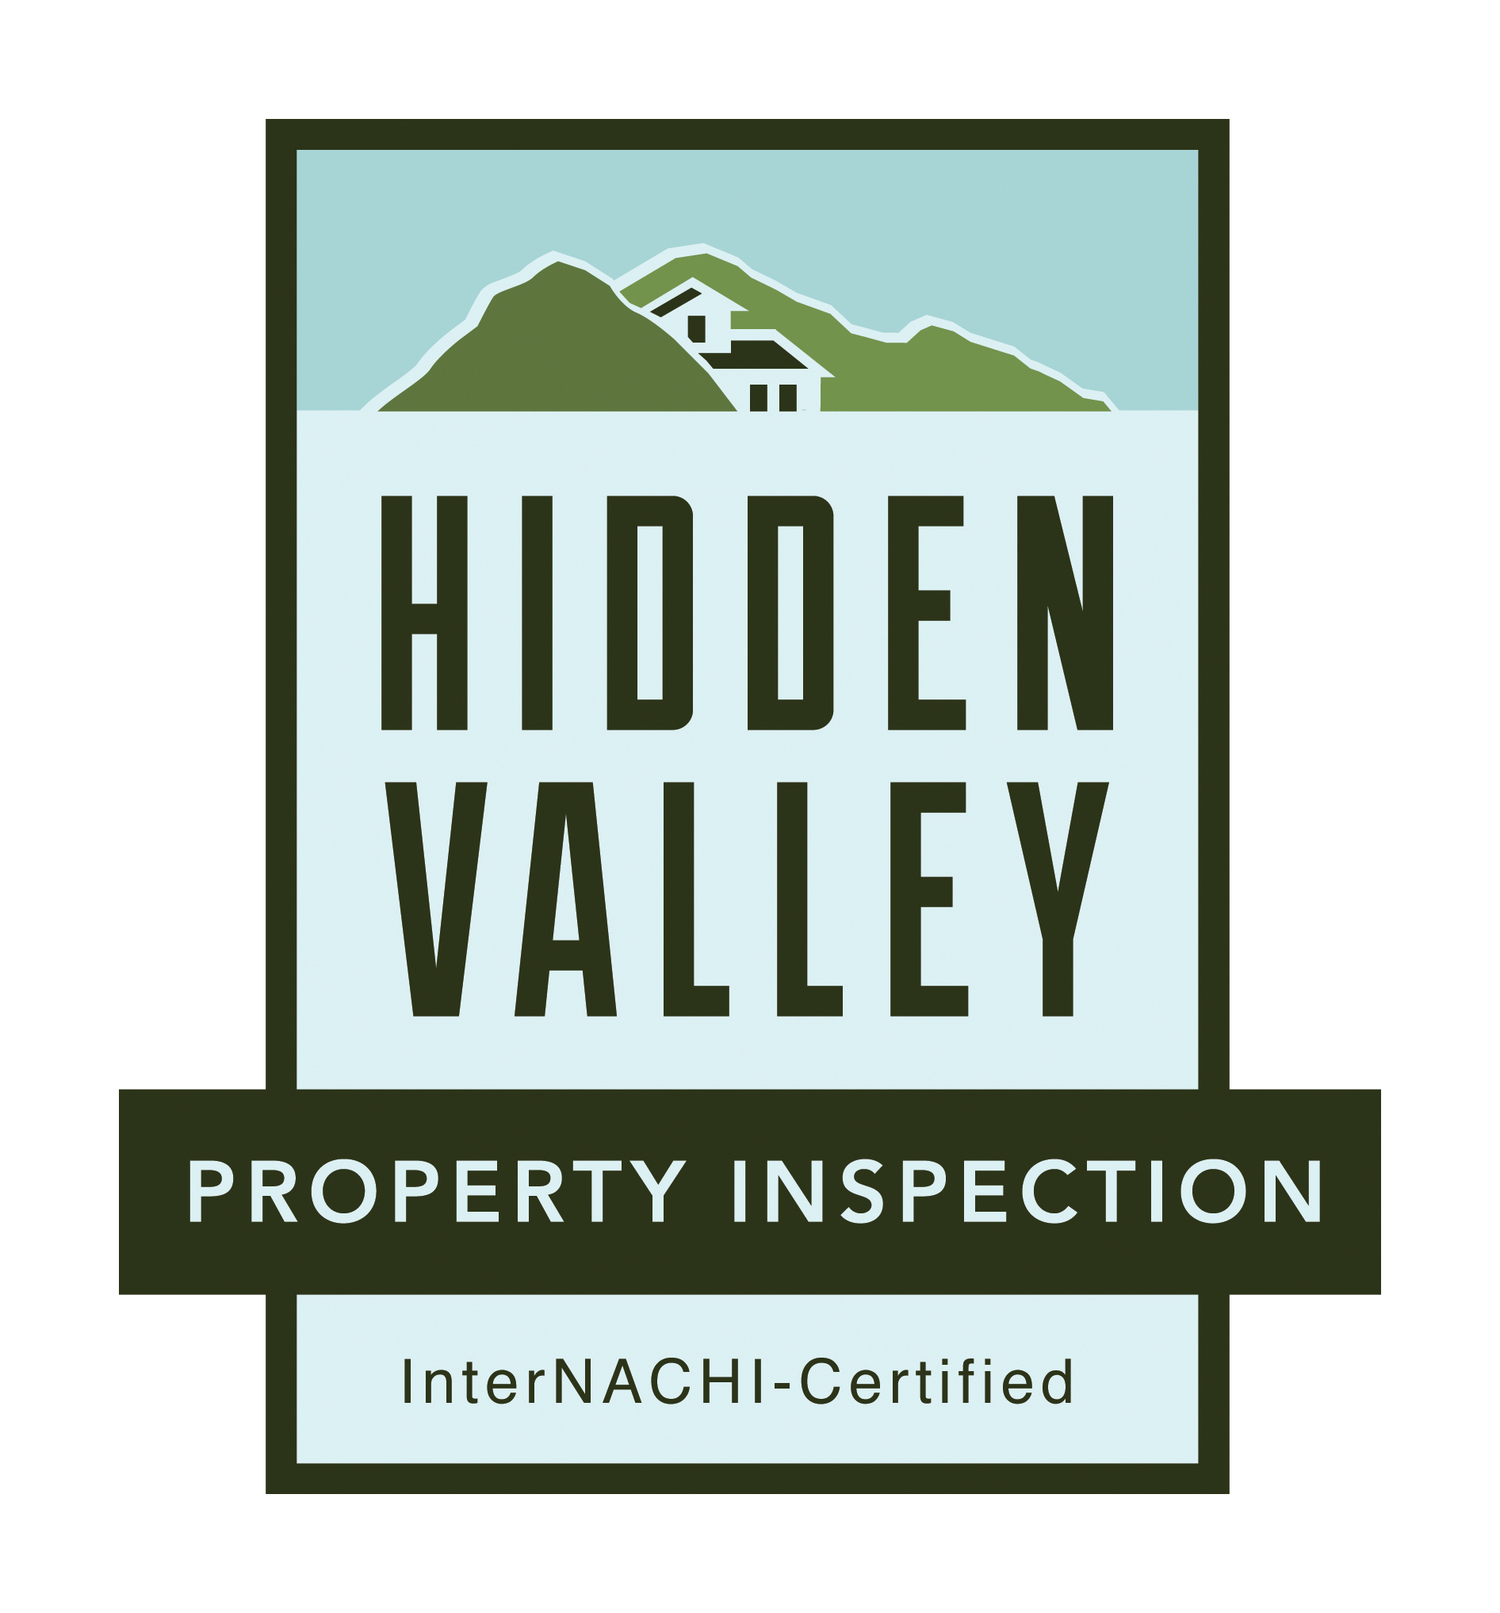 Hidden Valley Property Inspection - 801-913-7183